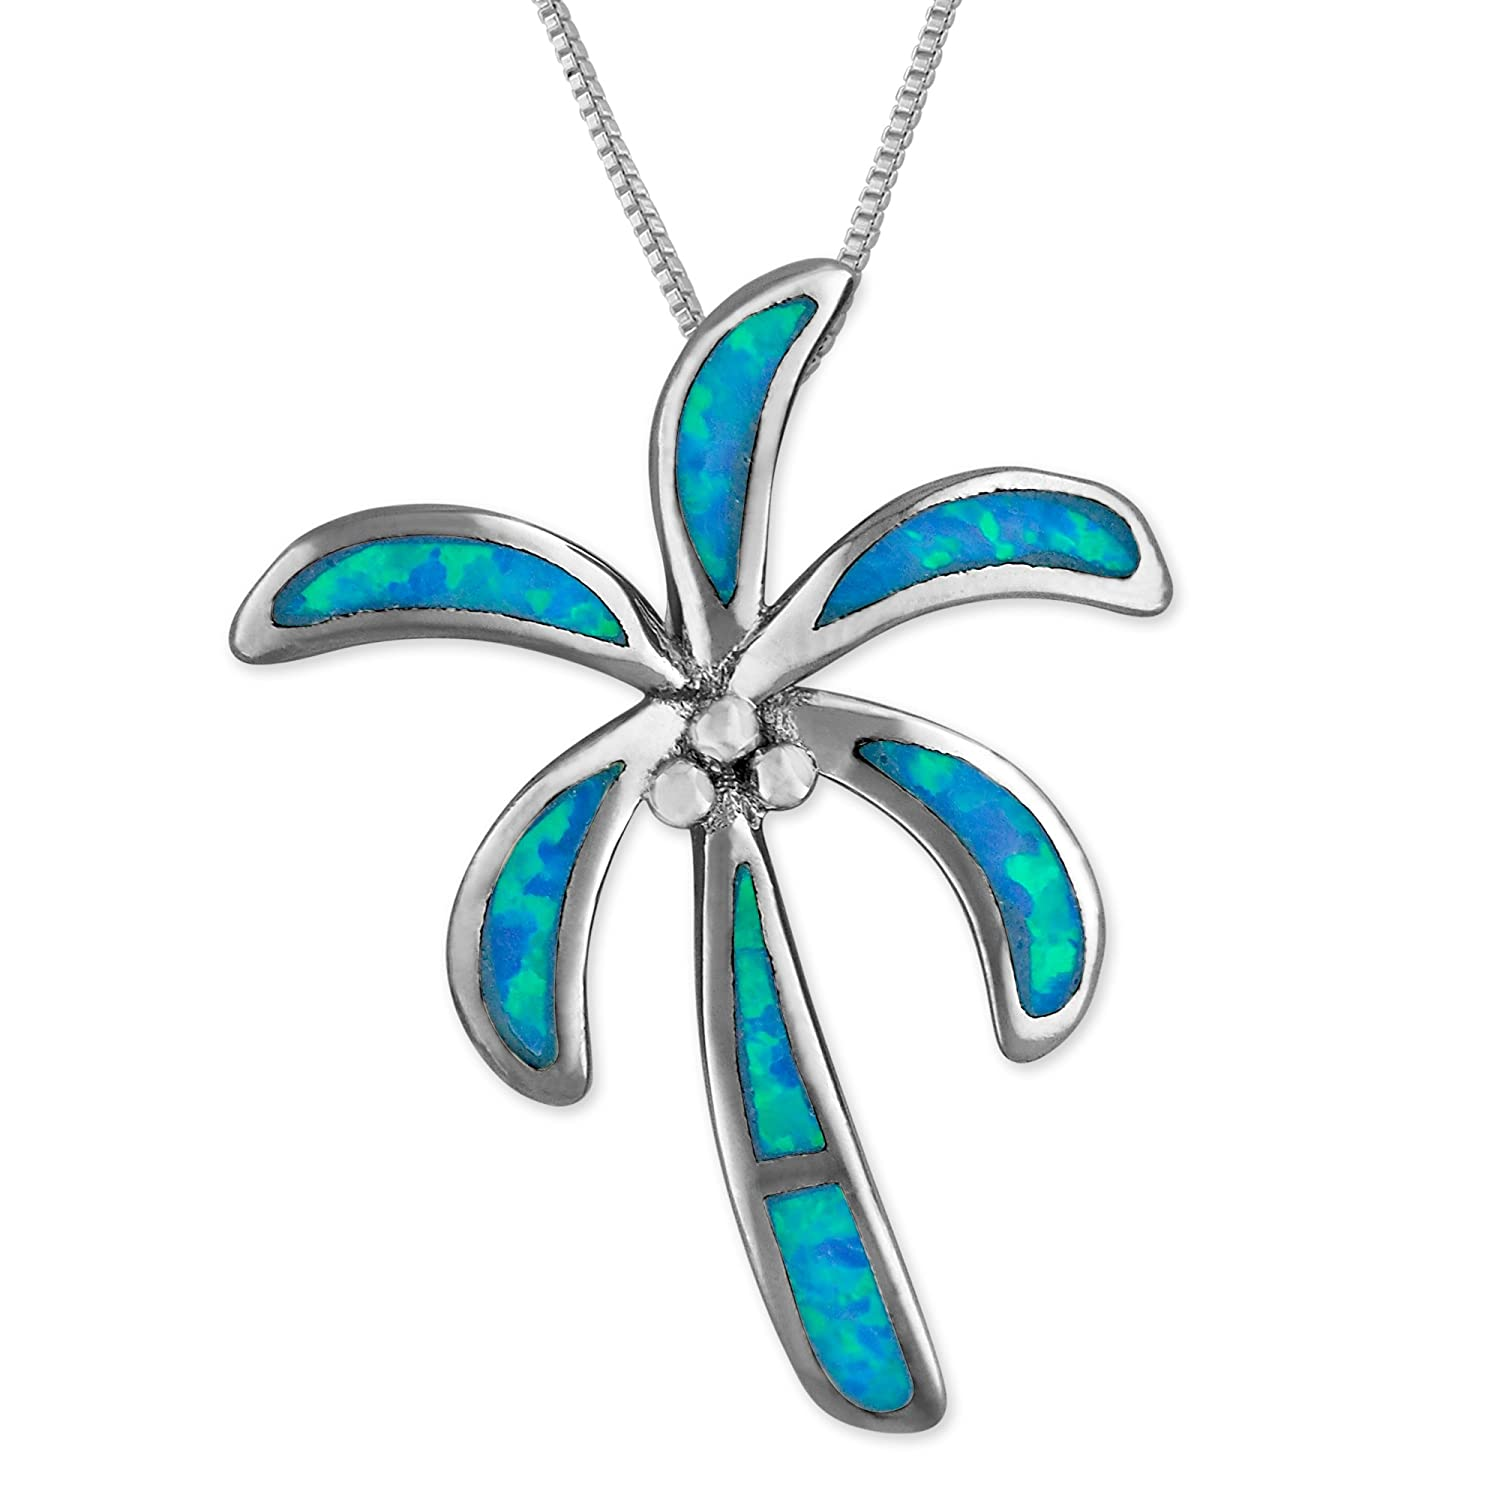 Solid Sterling Silver Rhodium Plated Simulated Blue Opal Flip Flop Pendant Necklace